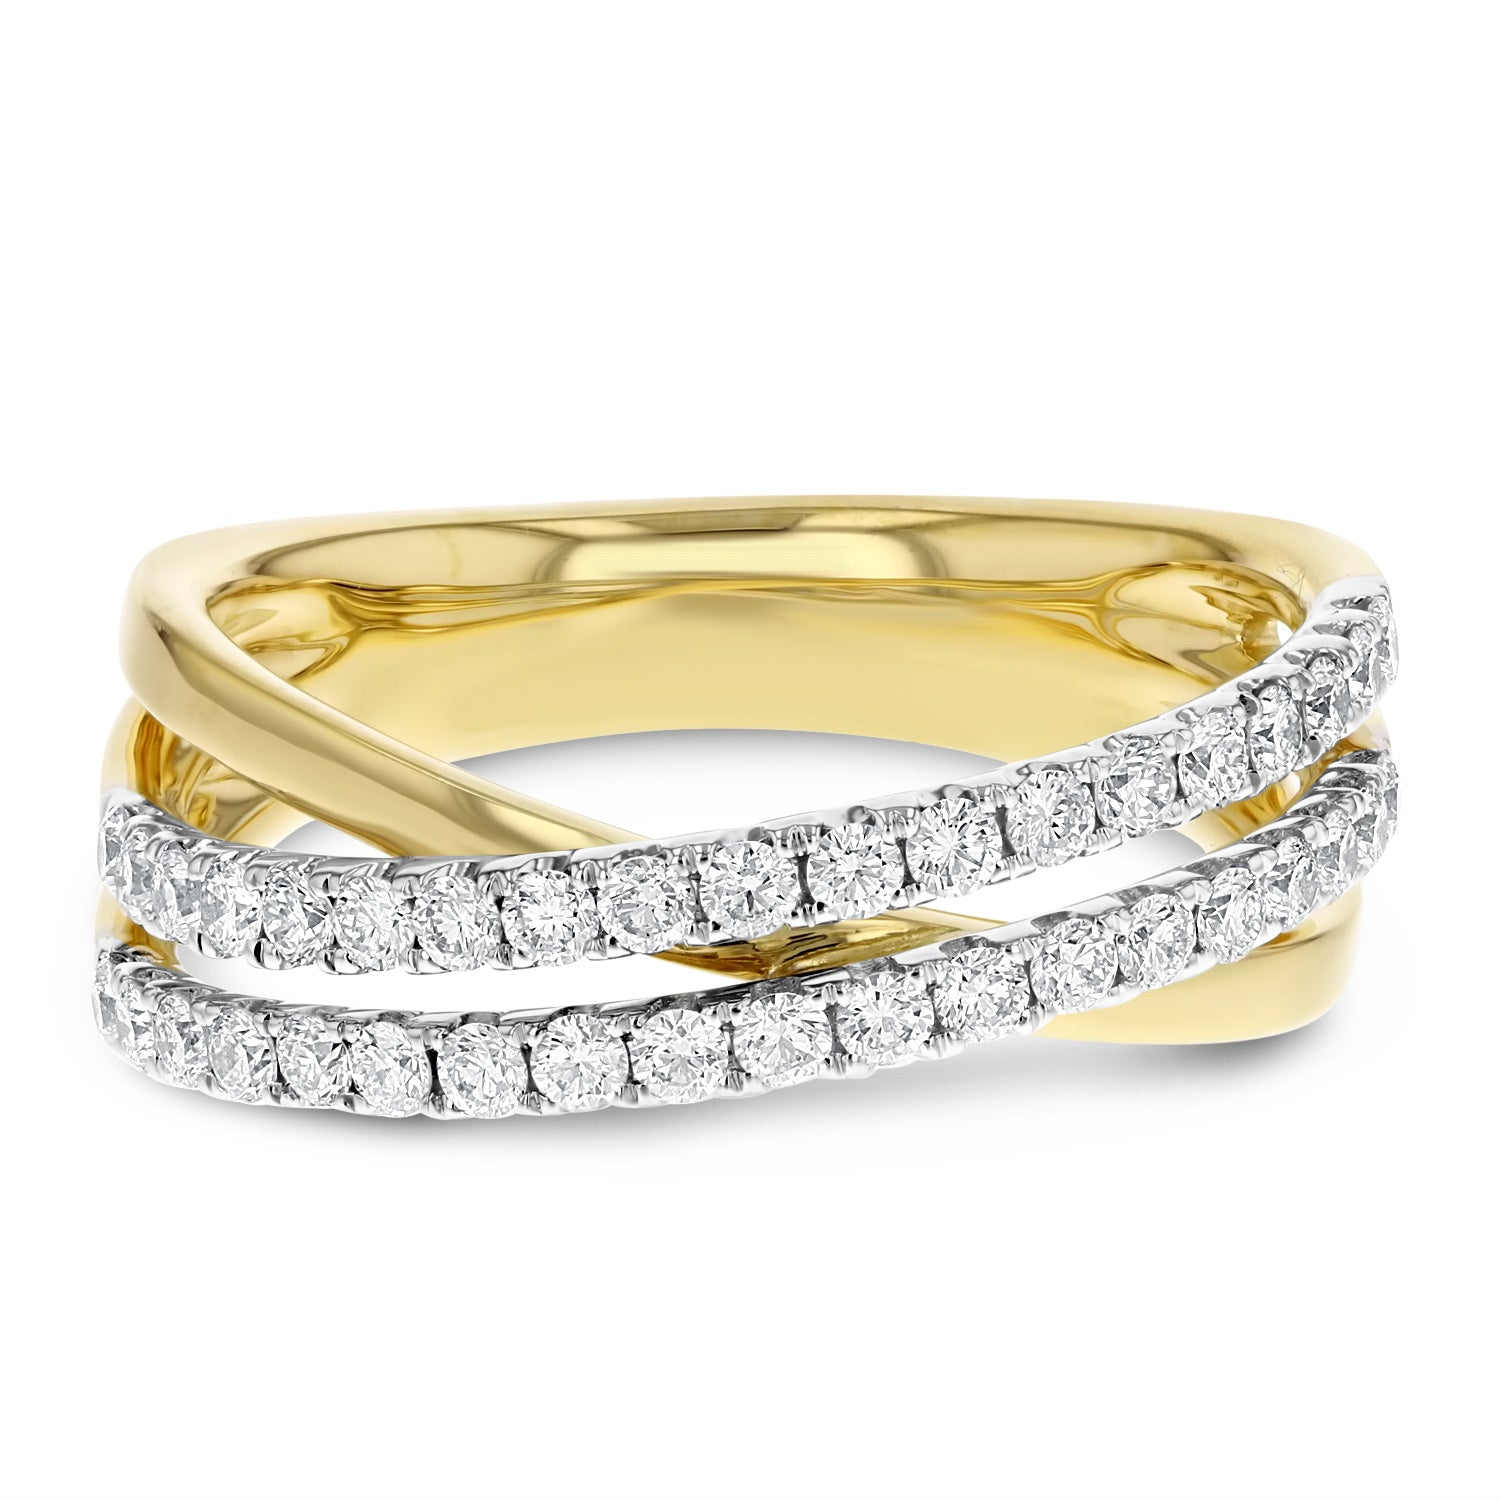 18K TWO TONE GOLD Statement Ring, 0.59 Carats